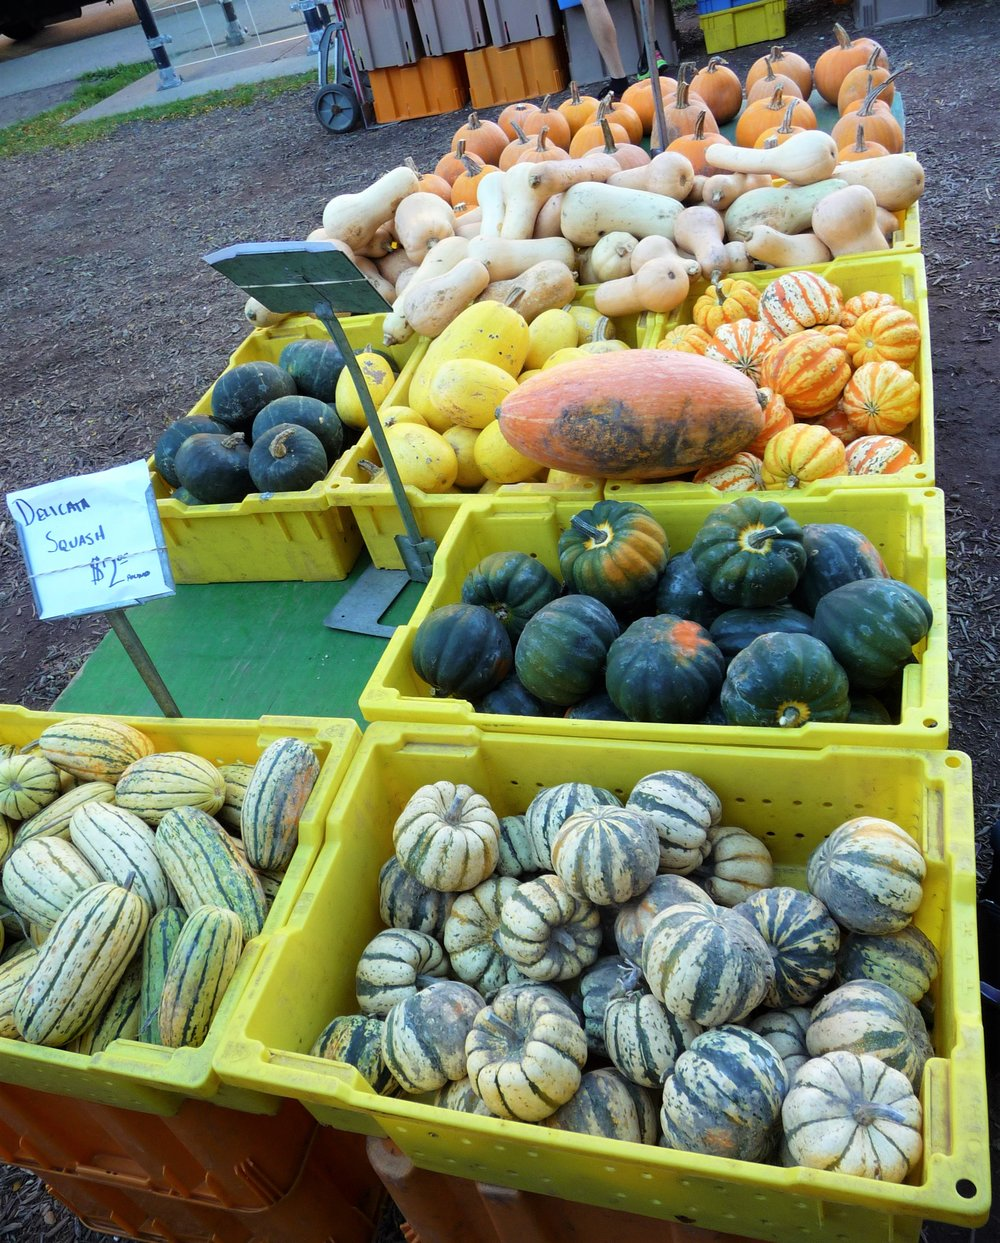 Chef's Tip: You can also substitute with any other heirloom fall squash, like acorn, kabocha, buttercup, celebration, and butternut